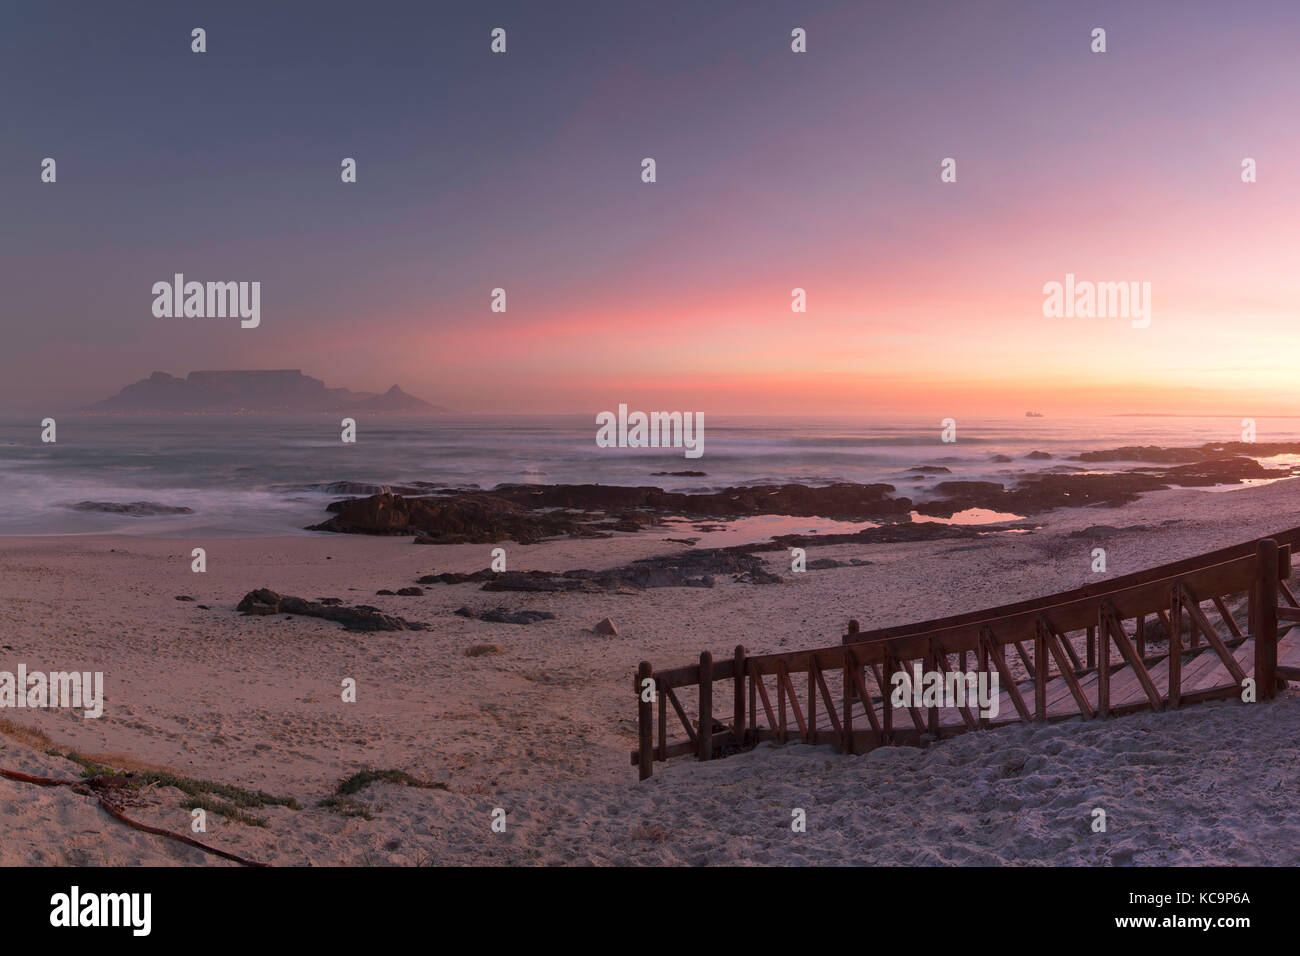 View of Table Mountain from Bloubergstrand, Cape Town, Western Cape, South Africa - Stock Image